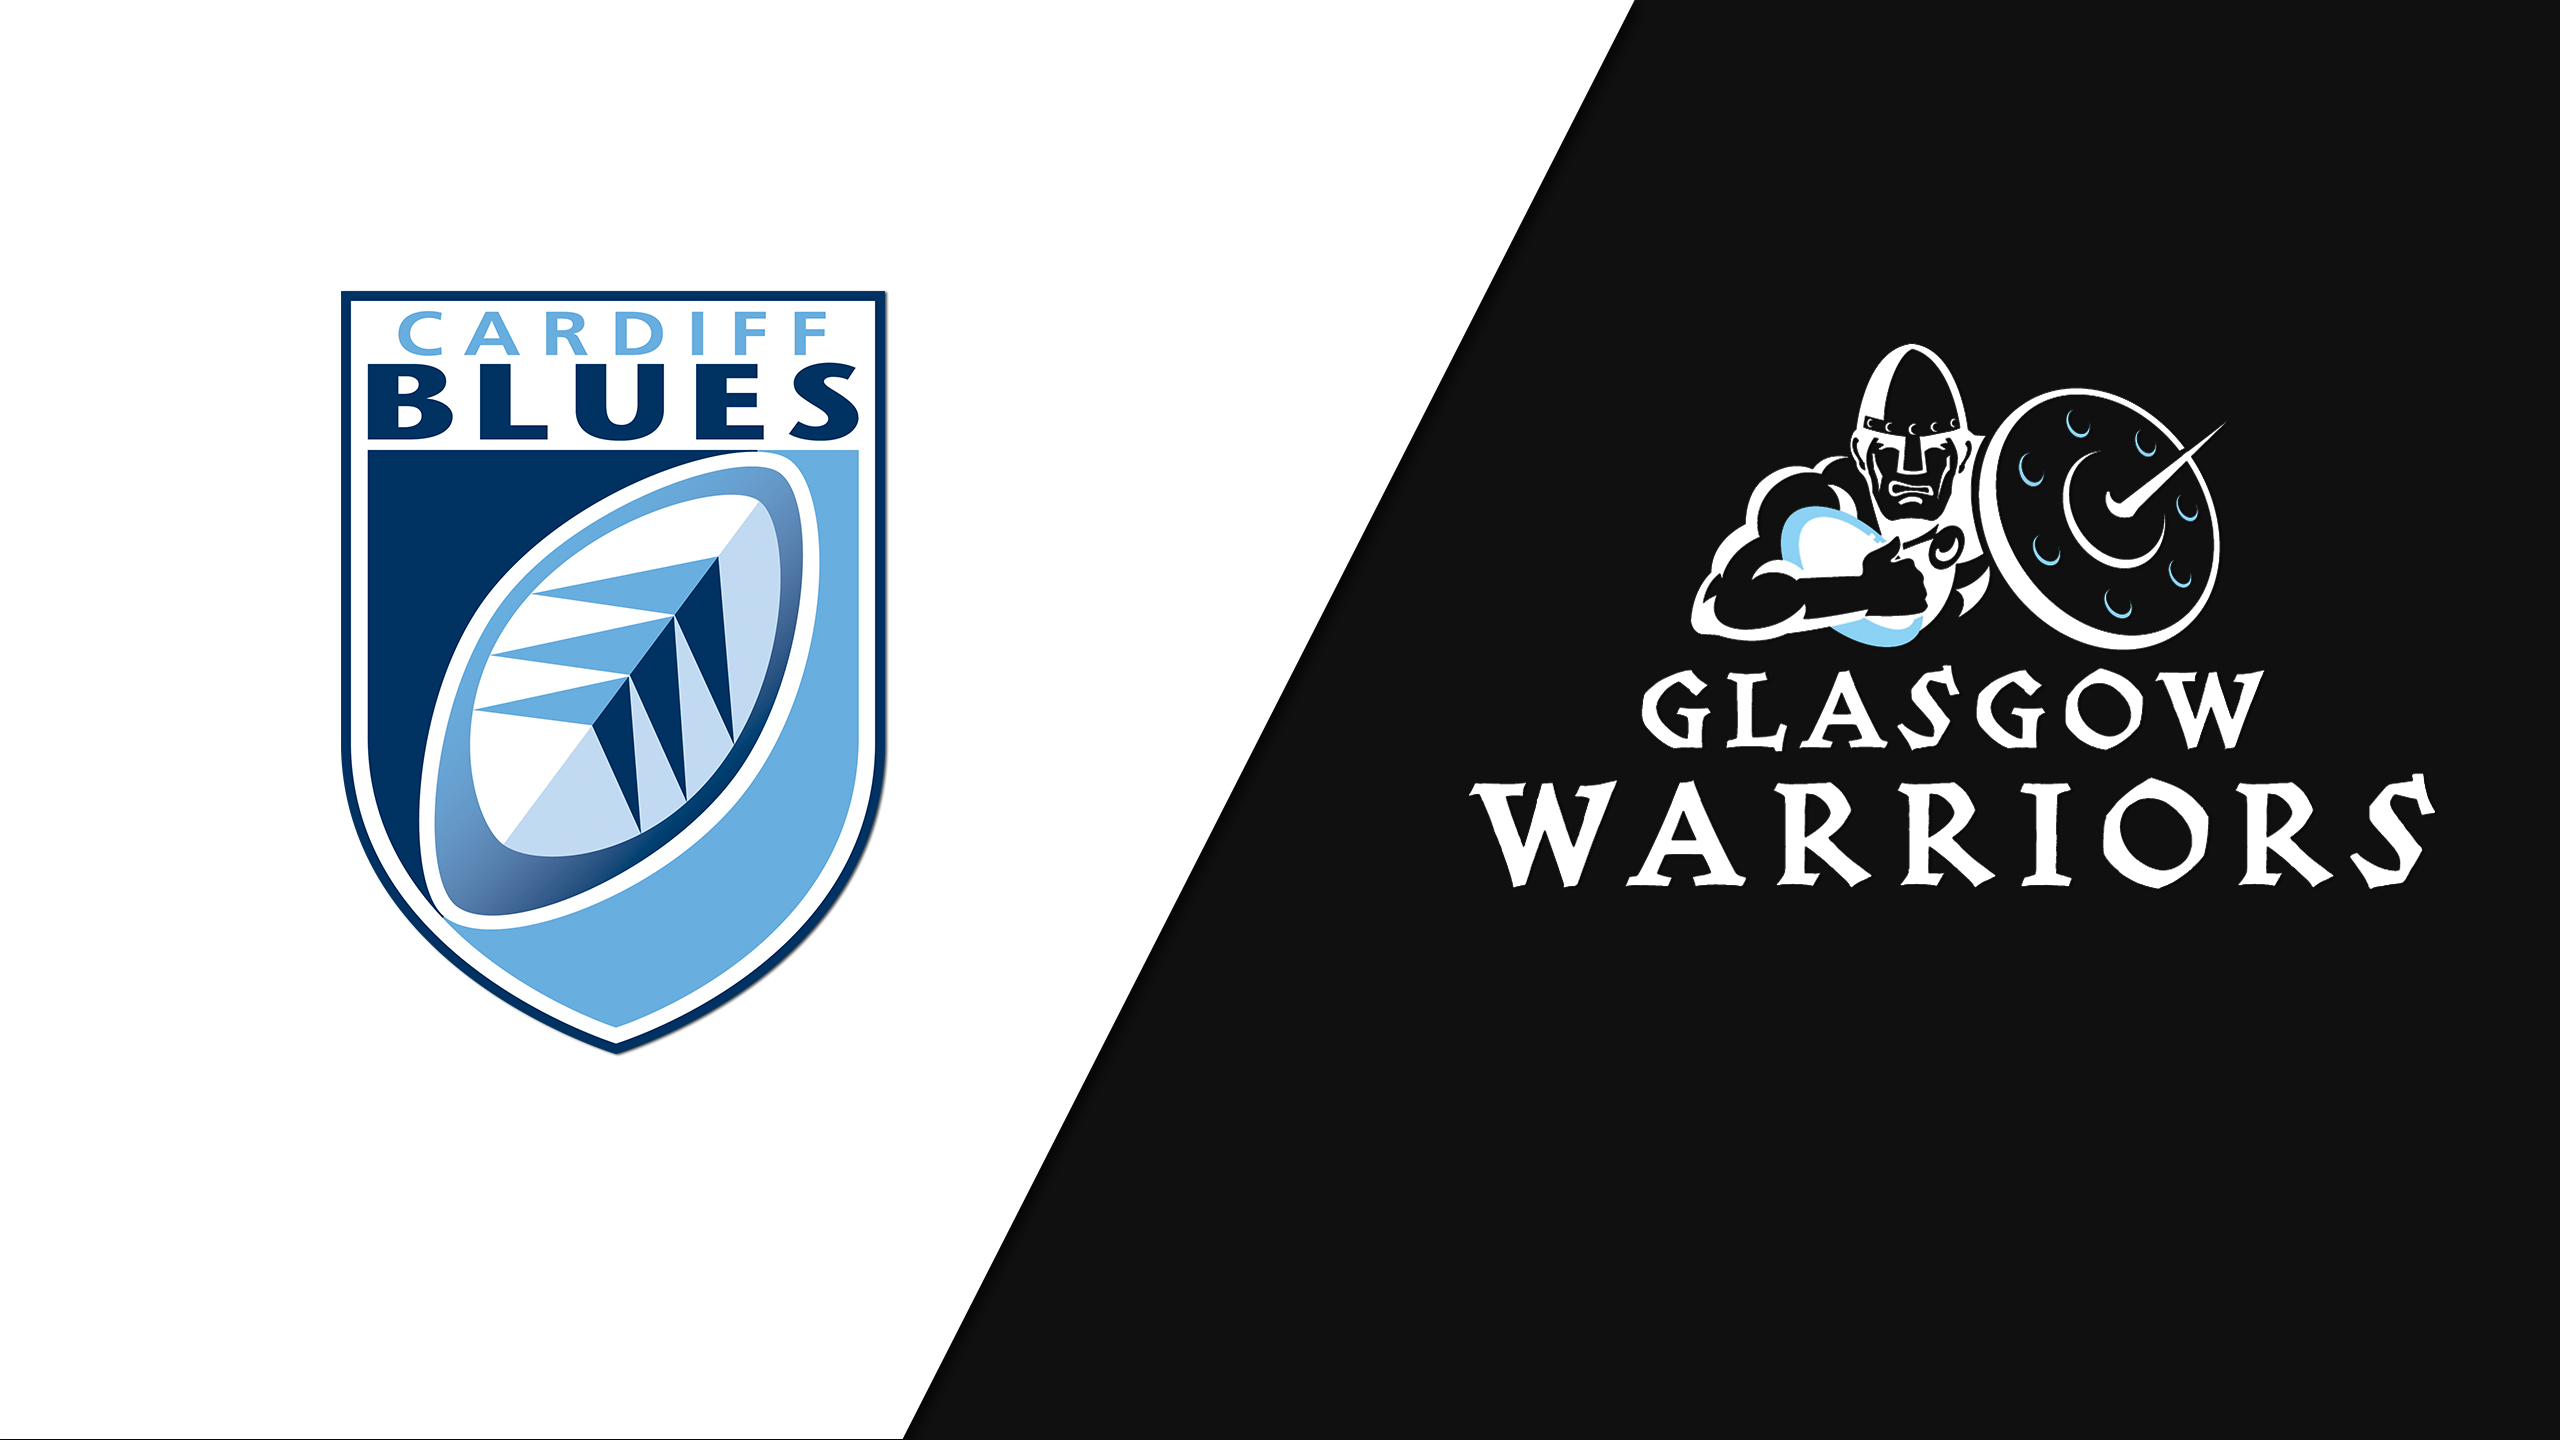 Cardiff Blues vs. Glasgow Warriors